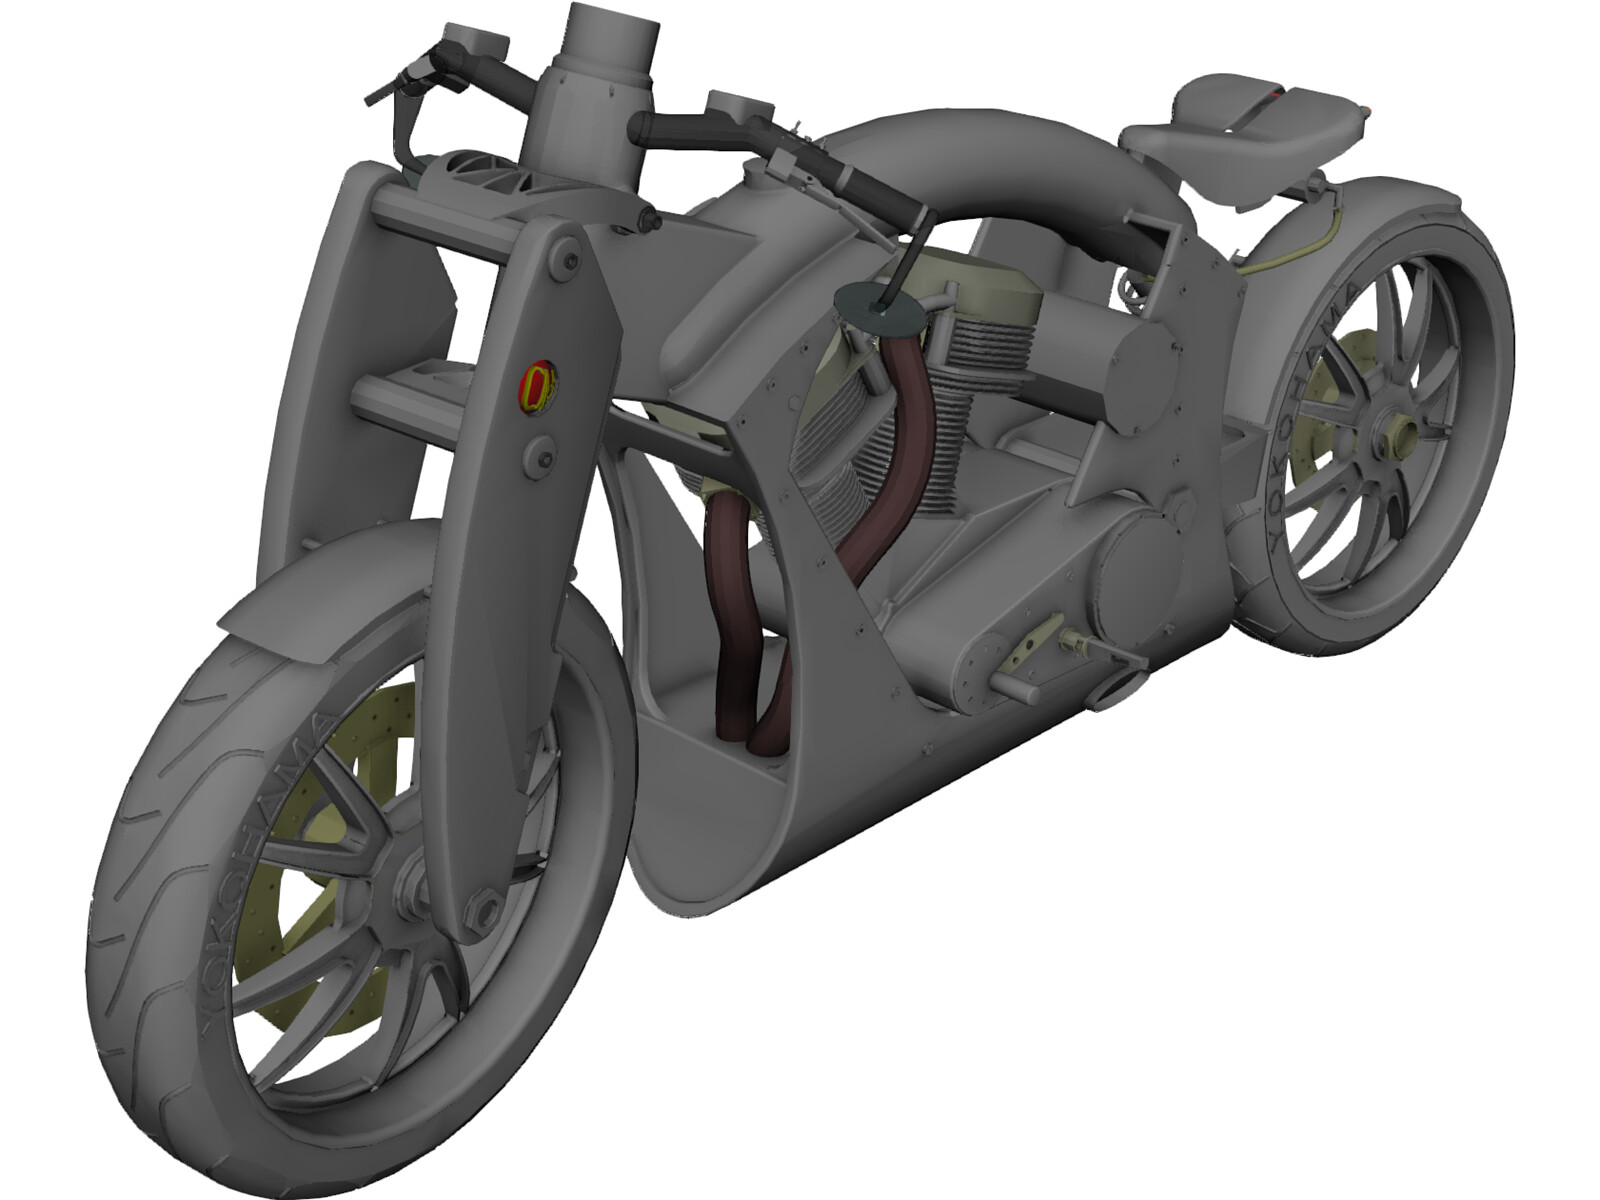 Motorcycle yokohama 3d cad model 3d cad browser Cad models